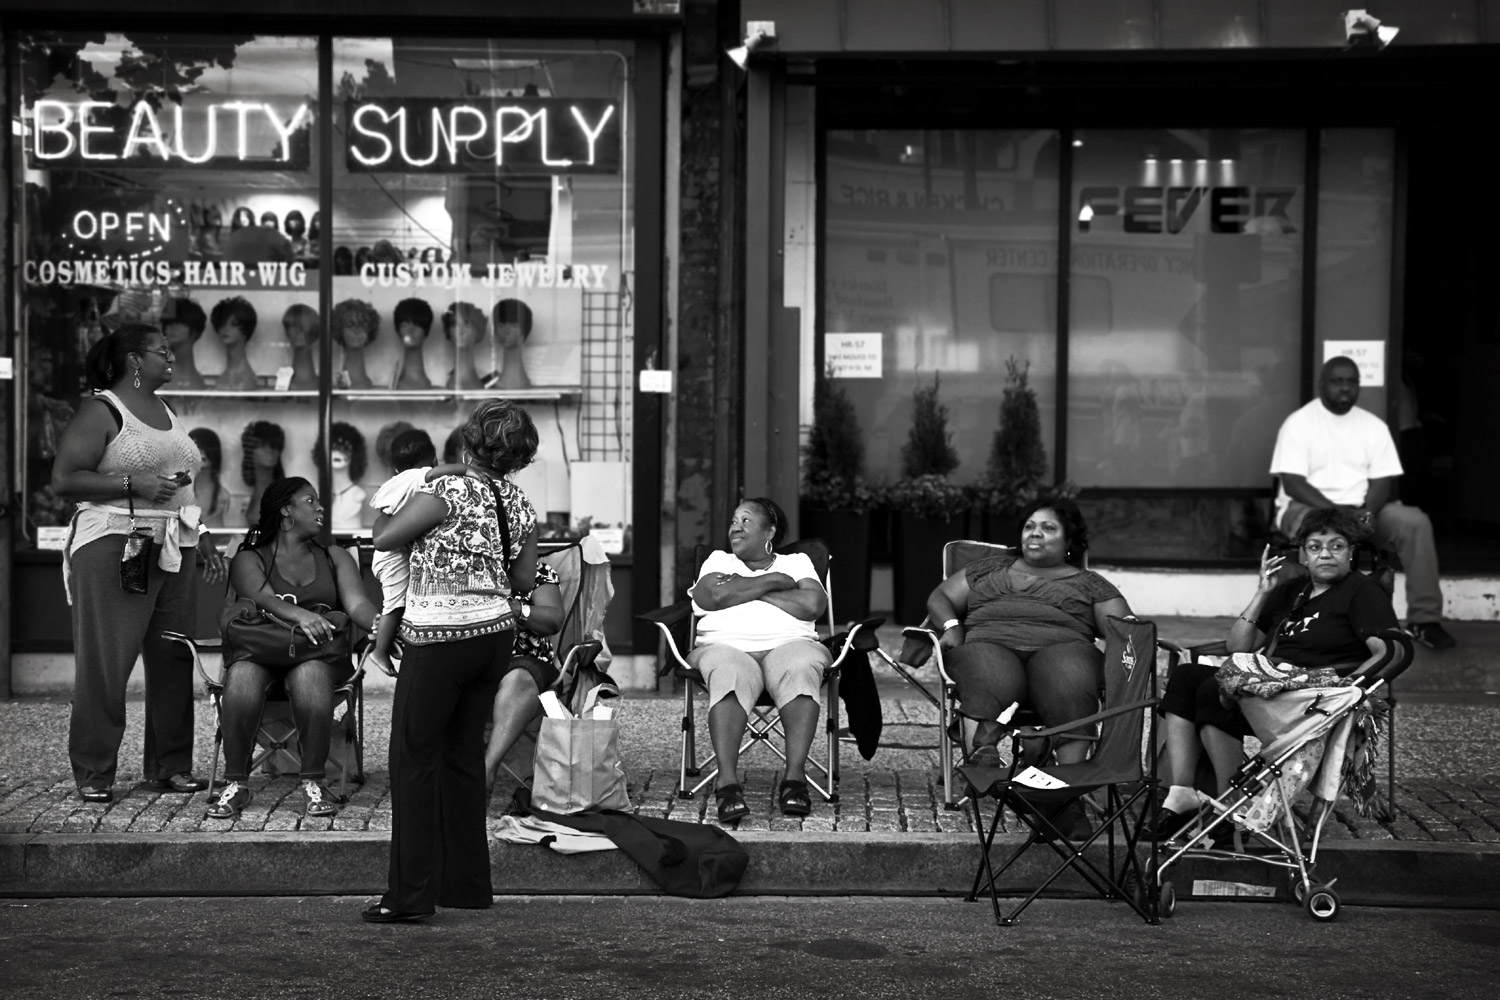 Women on H street - Washington, DC, 2012